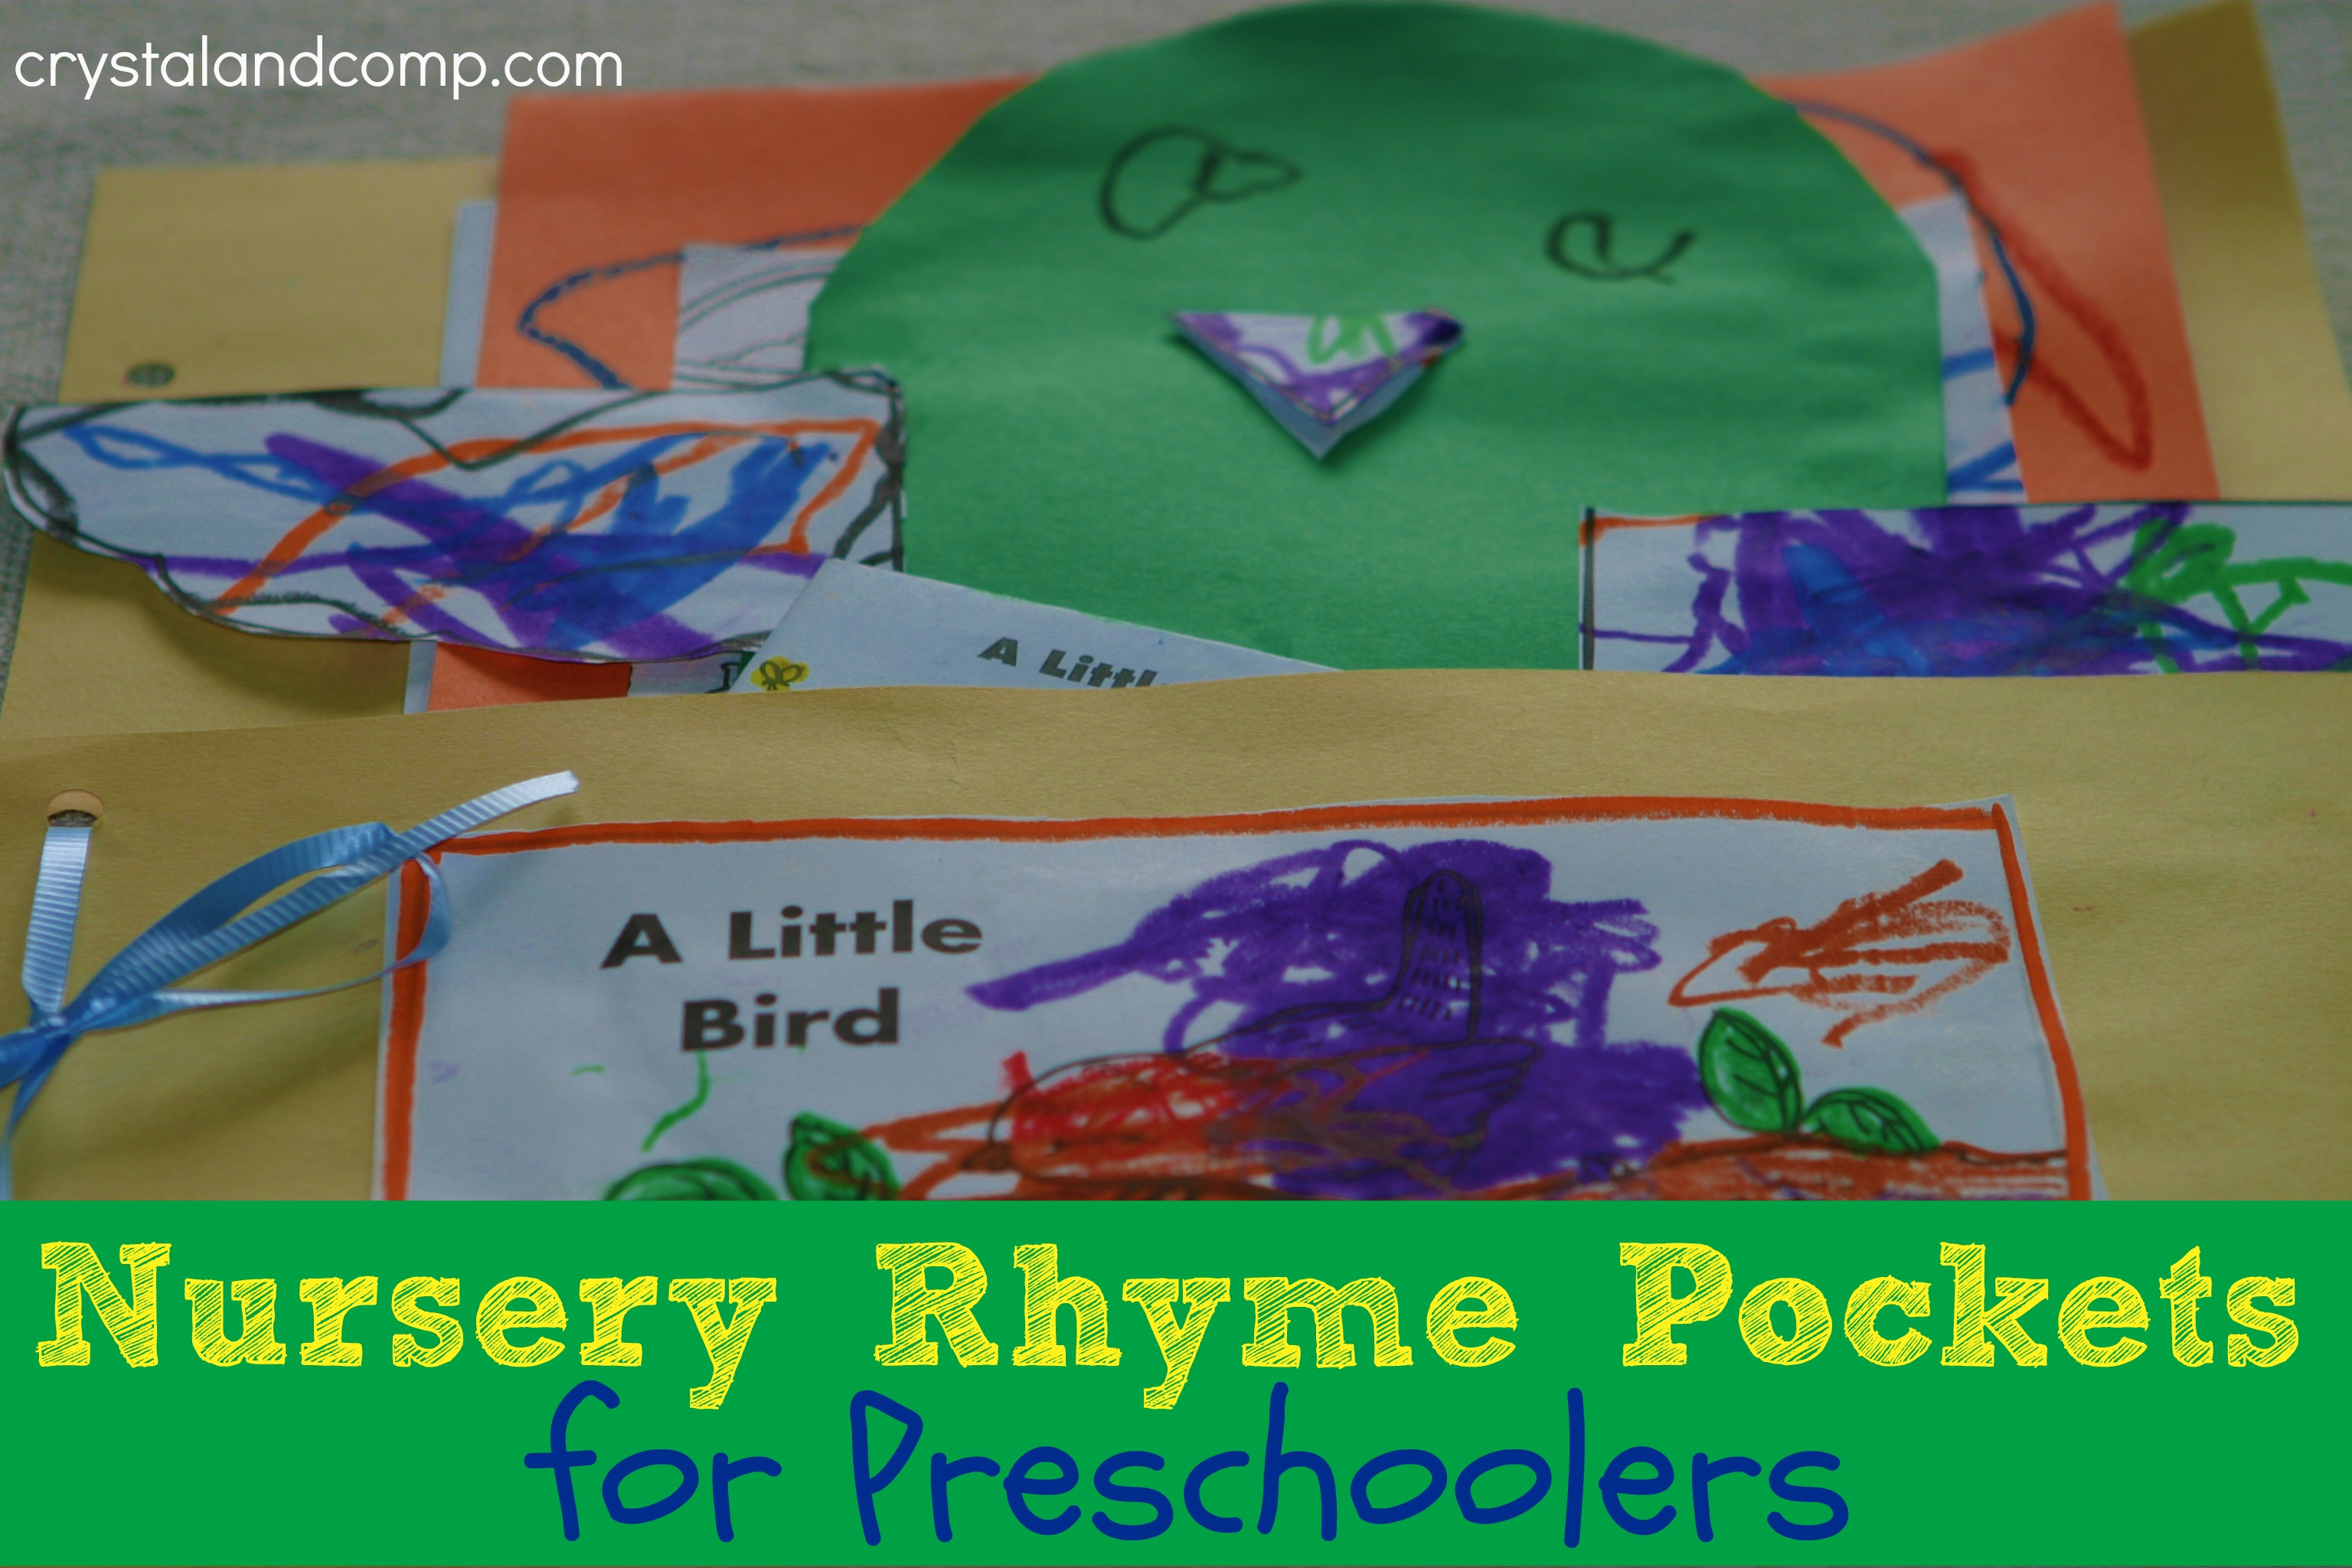 Nursery Rhyme Pockets For Preschoolers